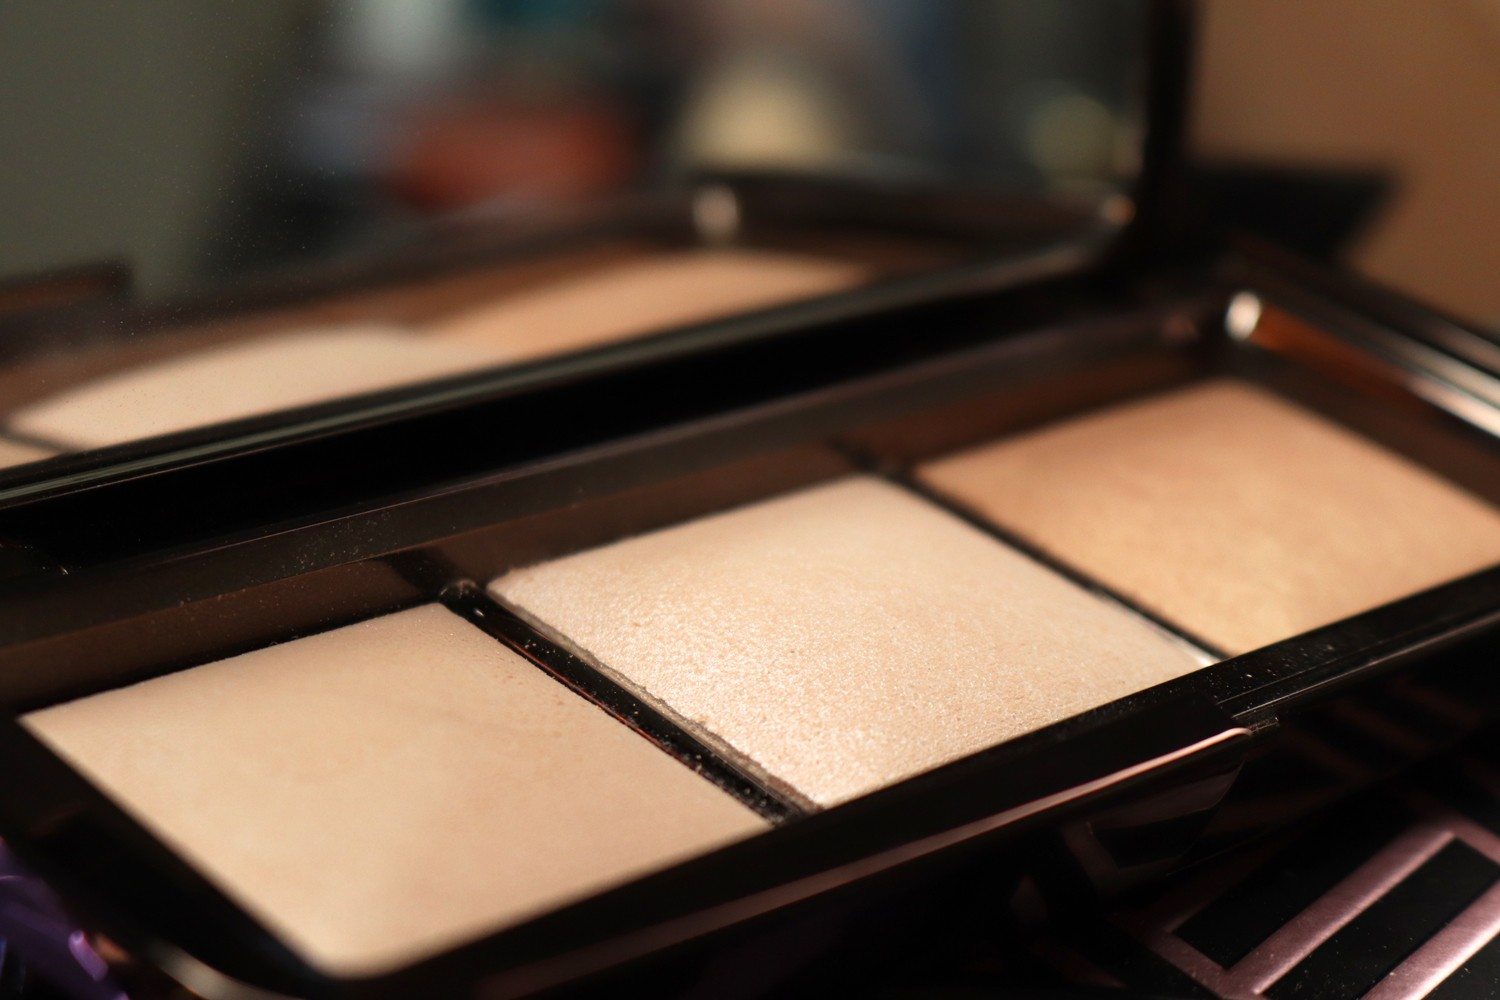 Hourglass Ambient Light Palette Review - Hourglass cosmetics going vegan by popular Las Vegas beauty blogger My Beauty Bunny